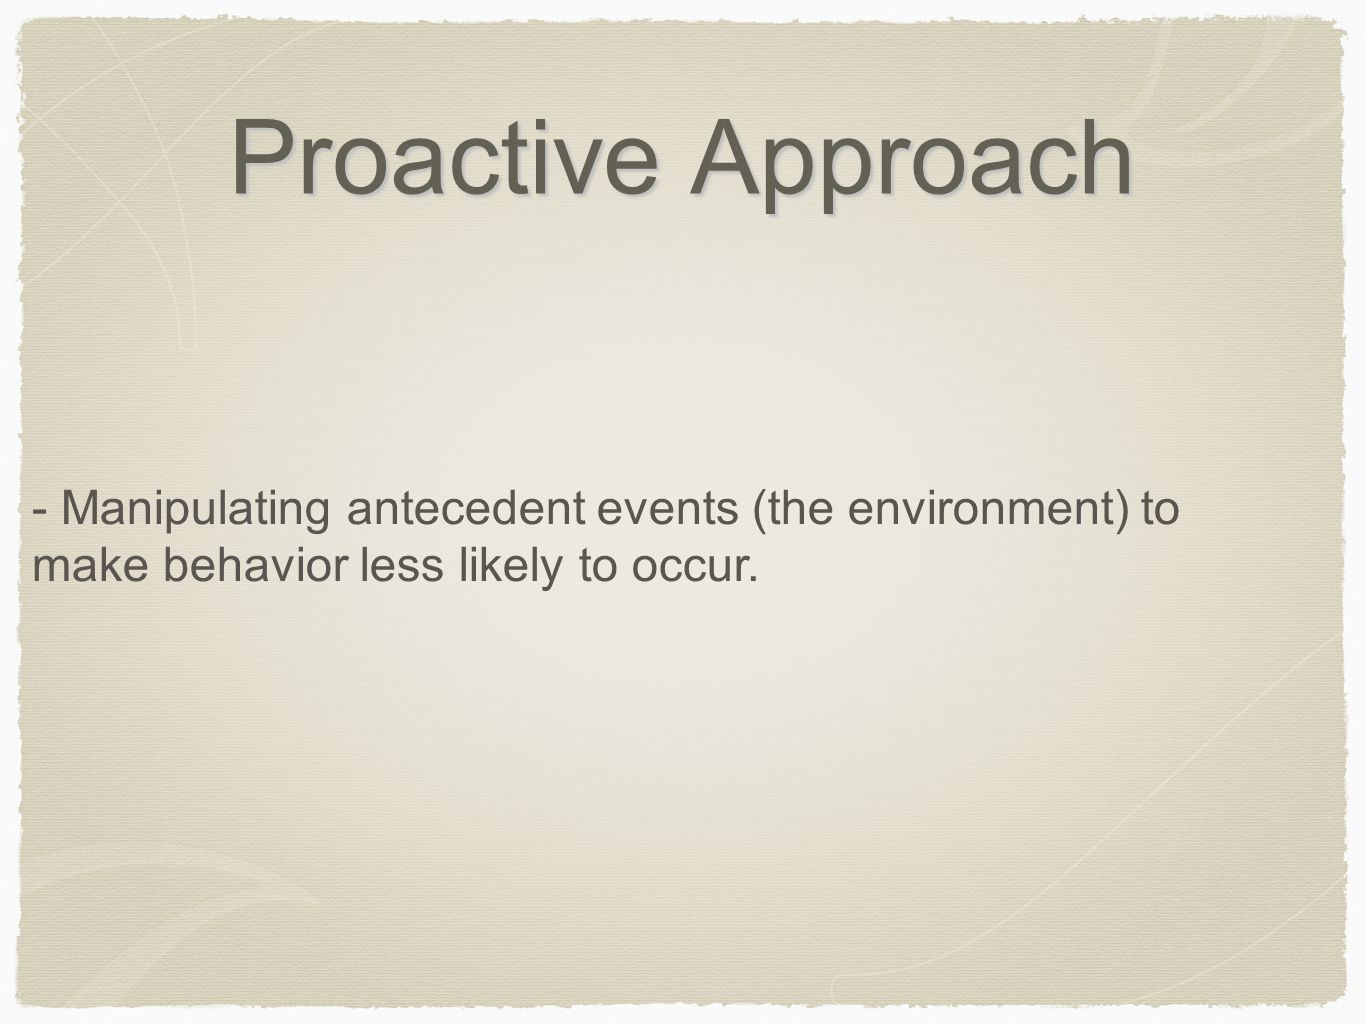 Proactive Approach - Manipulating antecedent events (the environment) to make behavior less likely to occur.